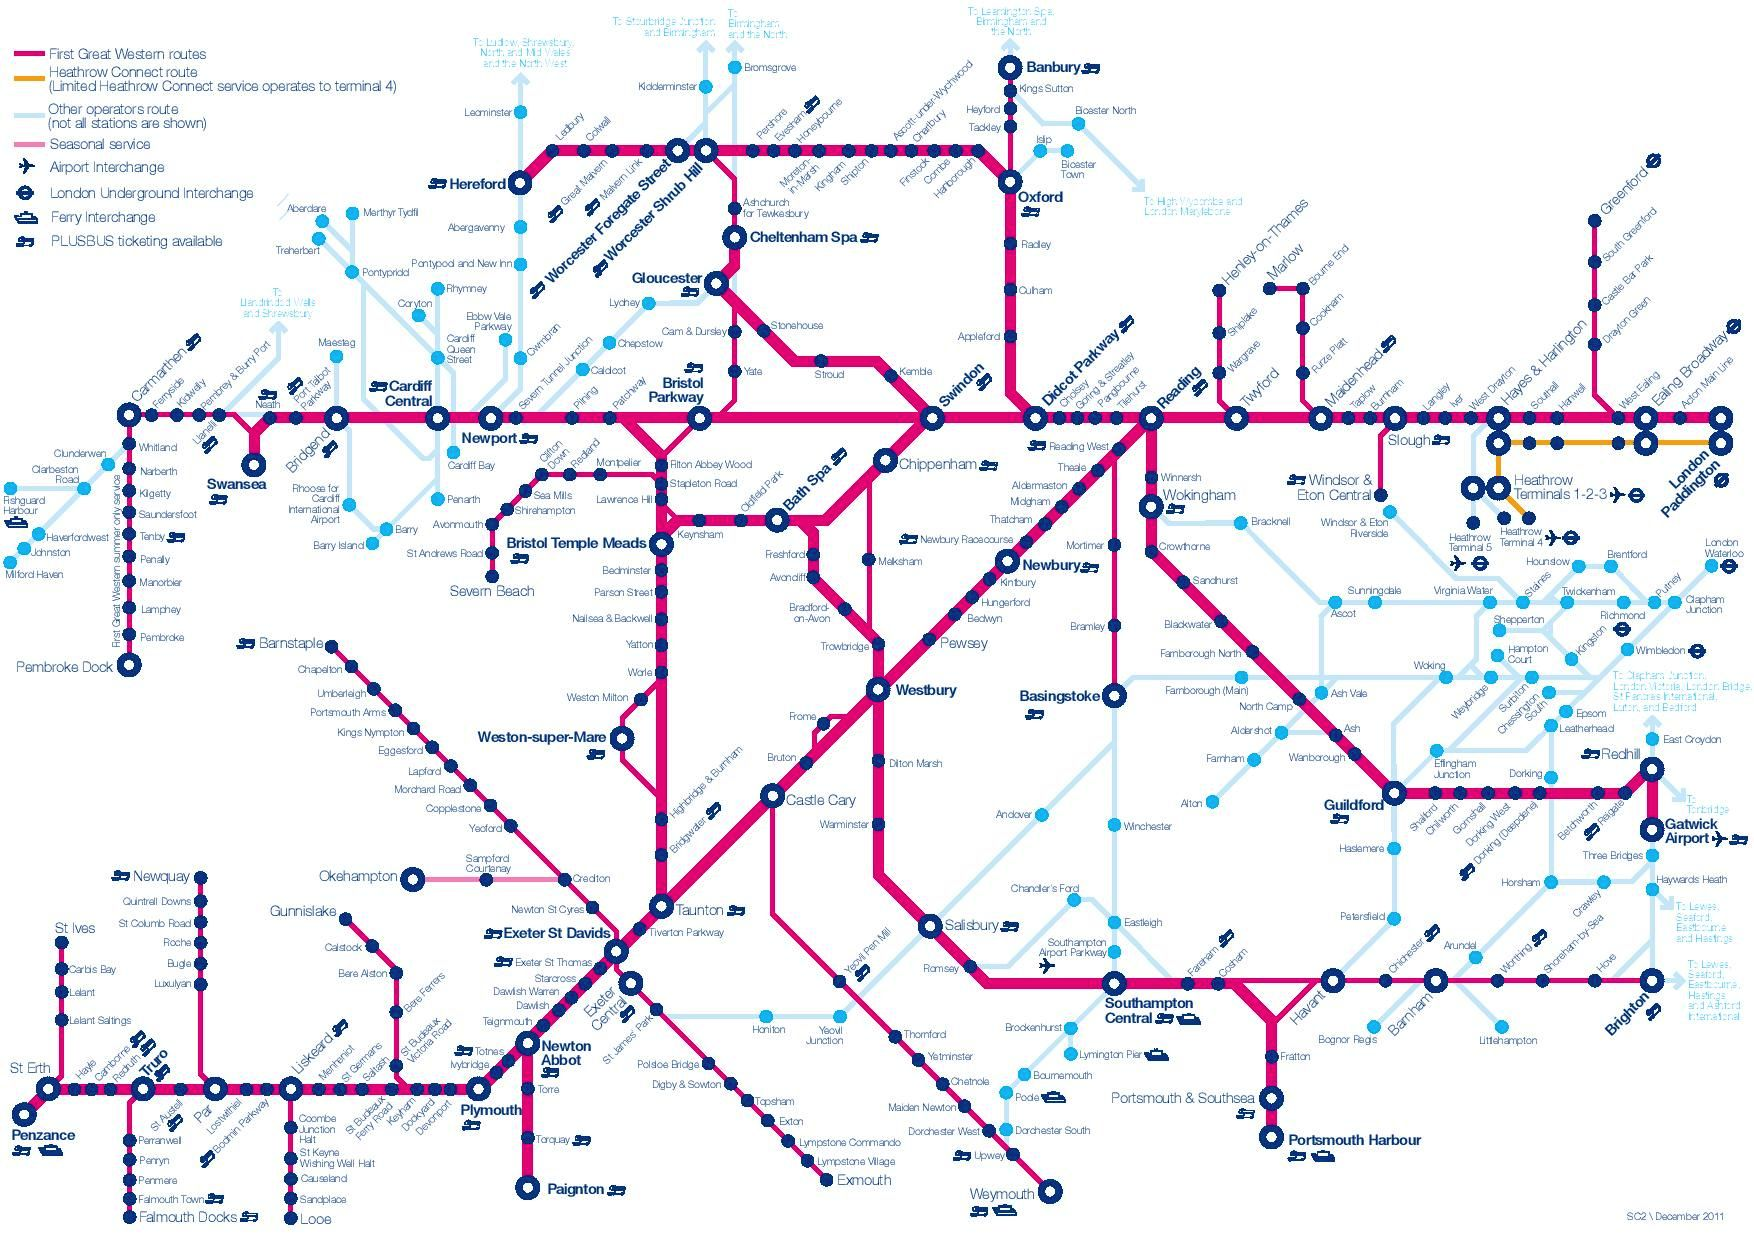 Image showing the First Great Western route map circa 2013.